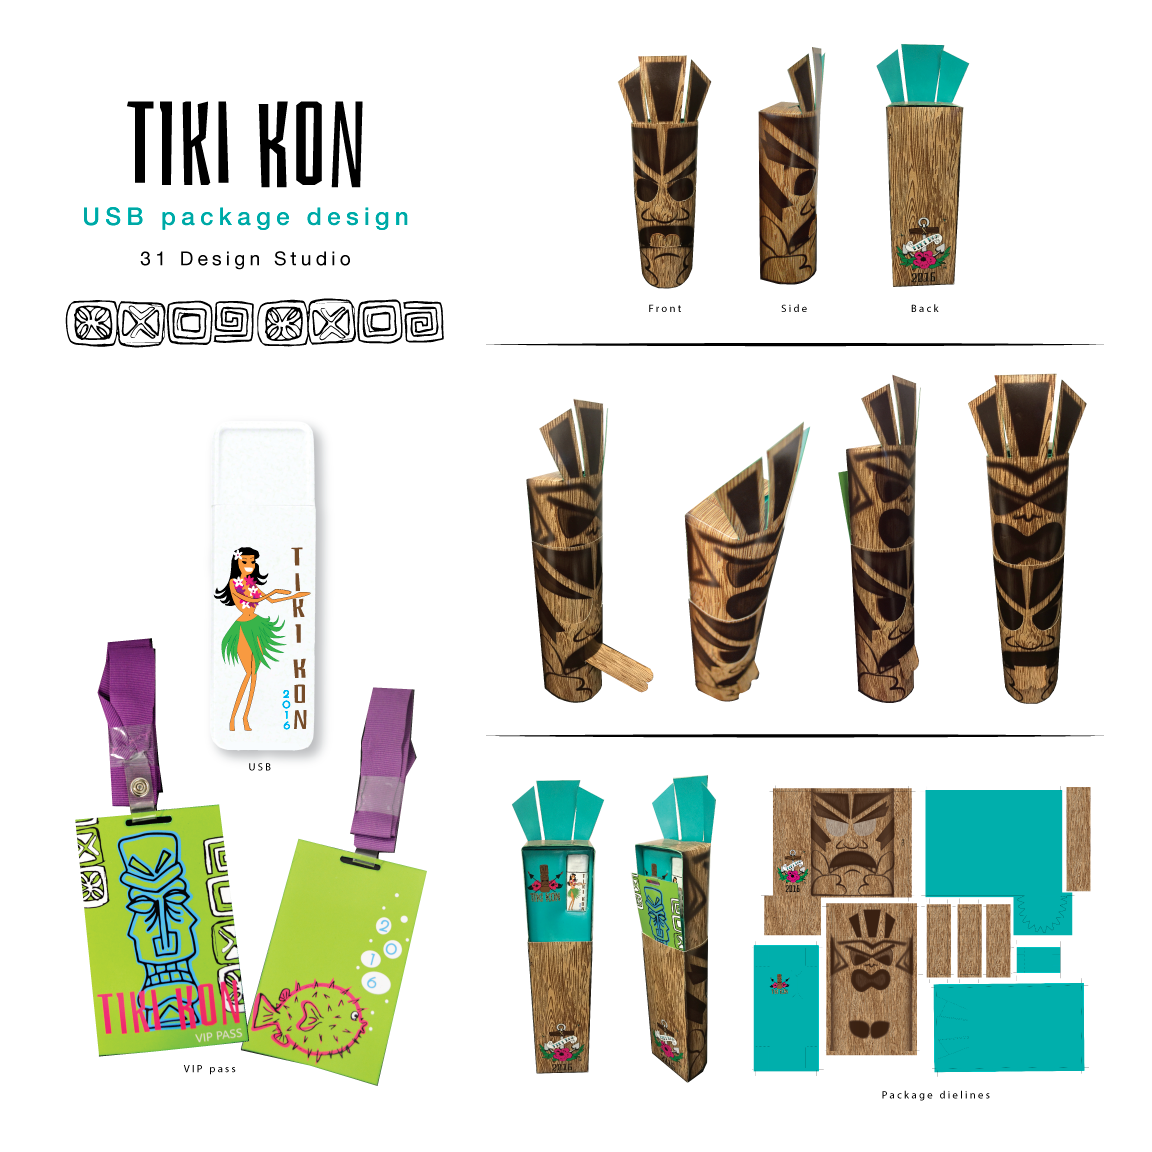 USB Package for Themed Event - Tiki Kon